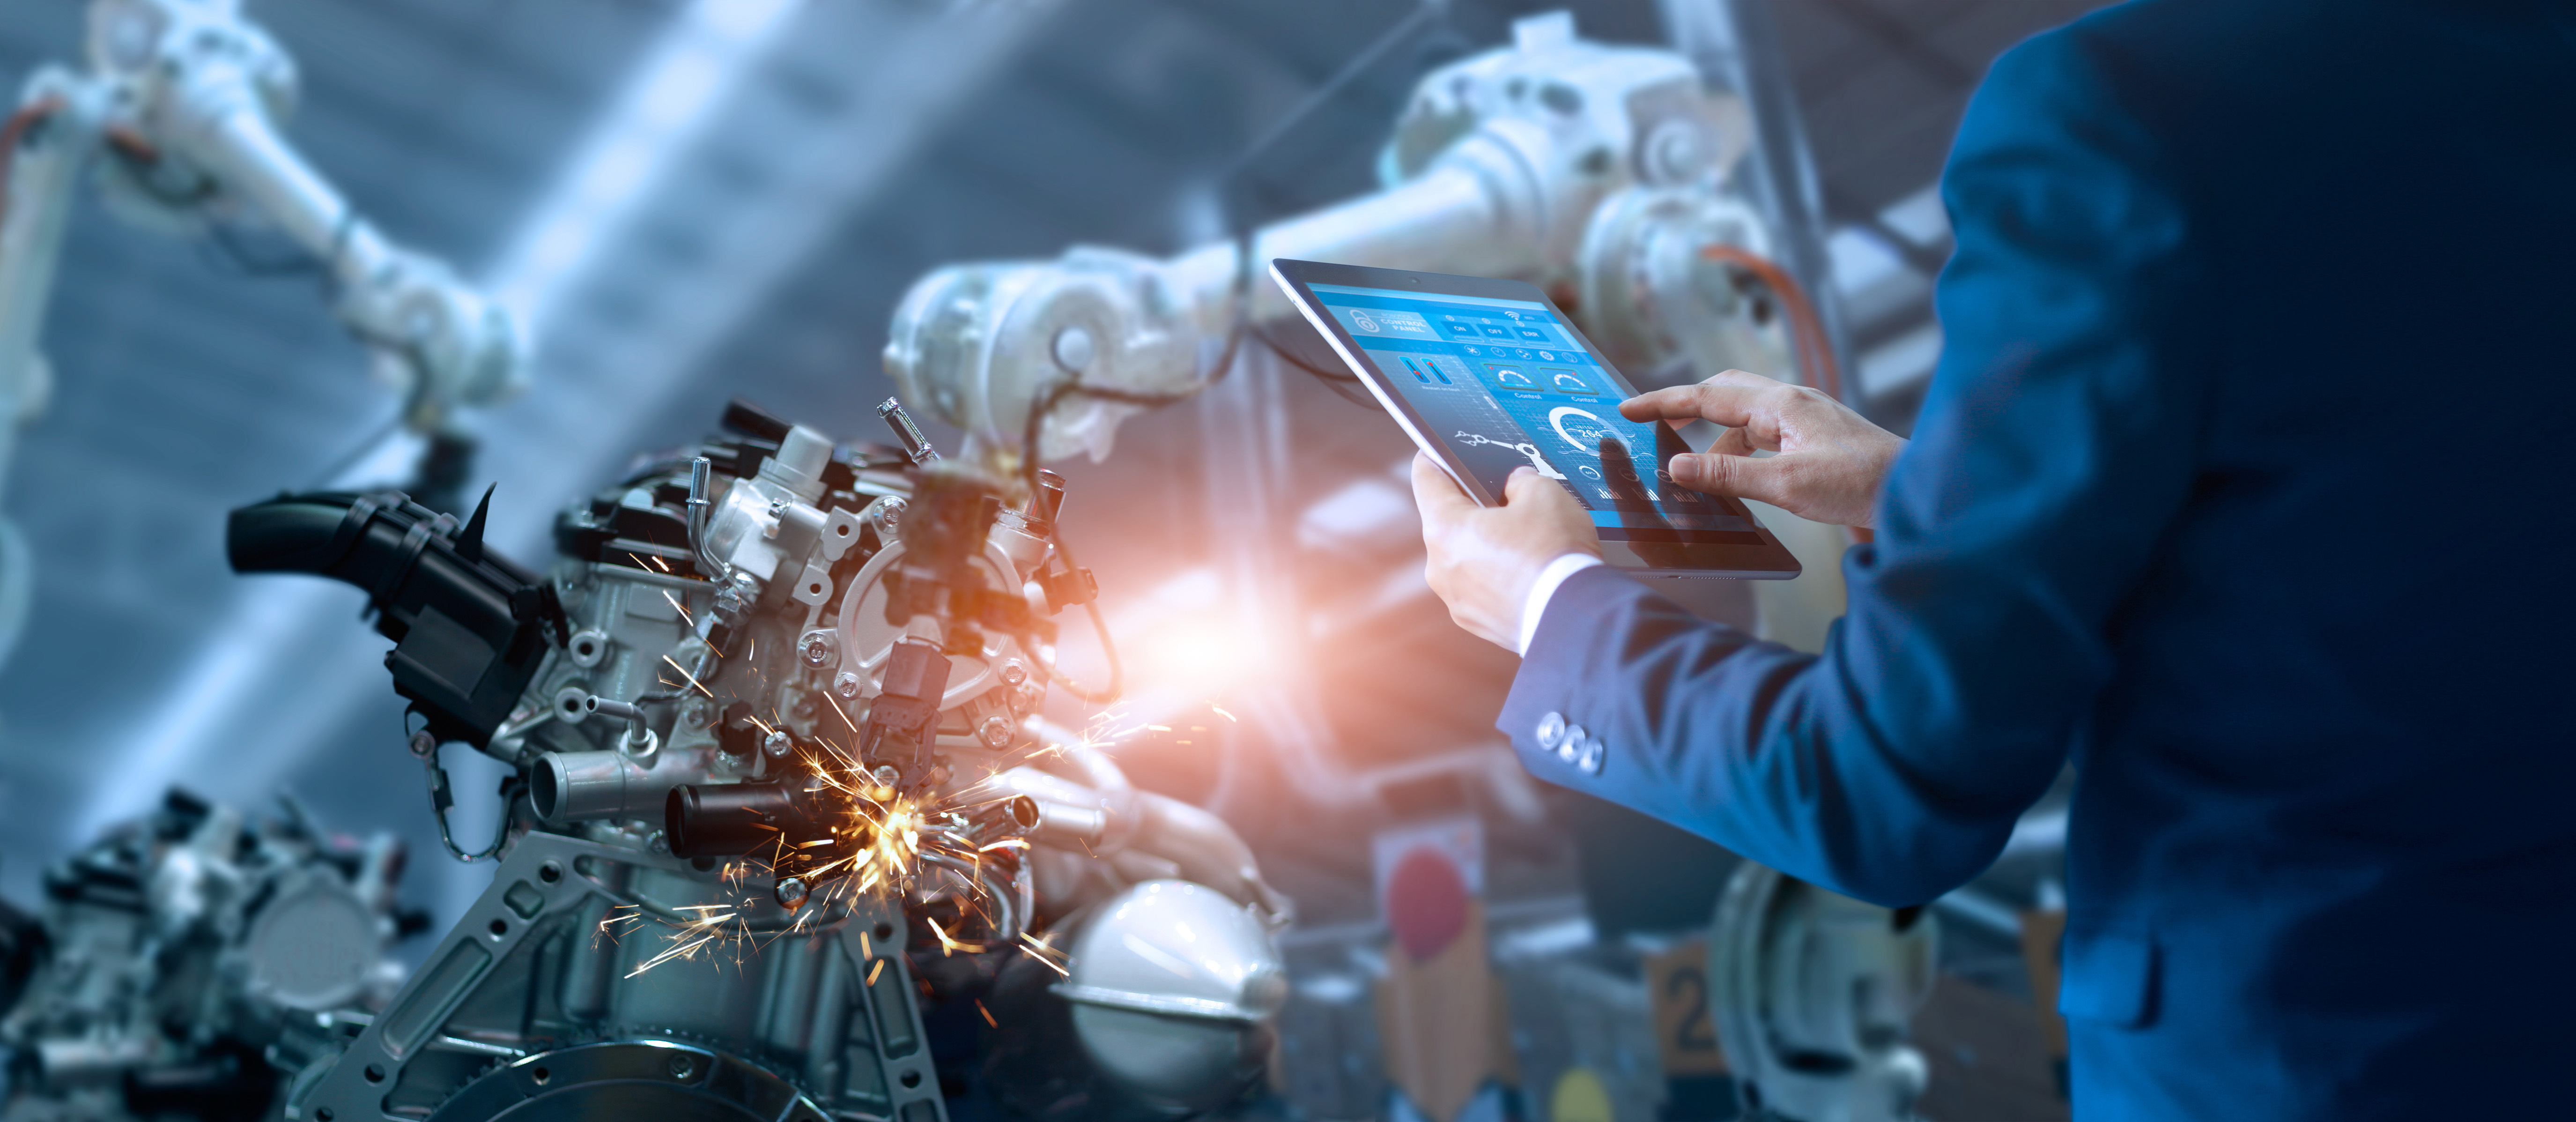 IoT Cleaning Robots: 3 Benefits for Your Commercial Cleaning Business